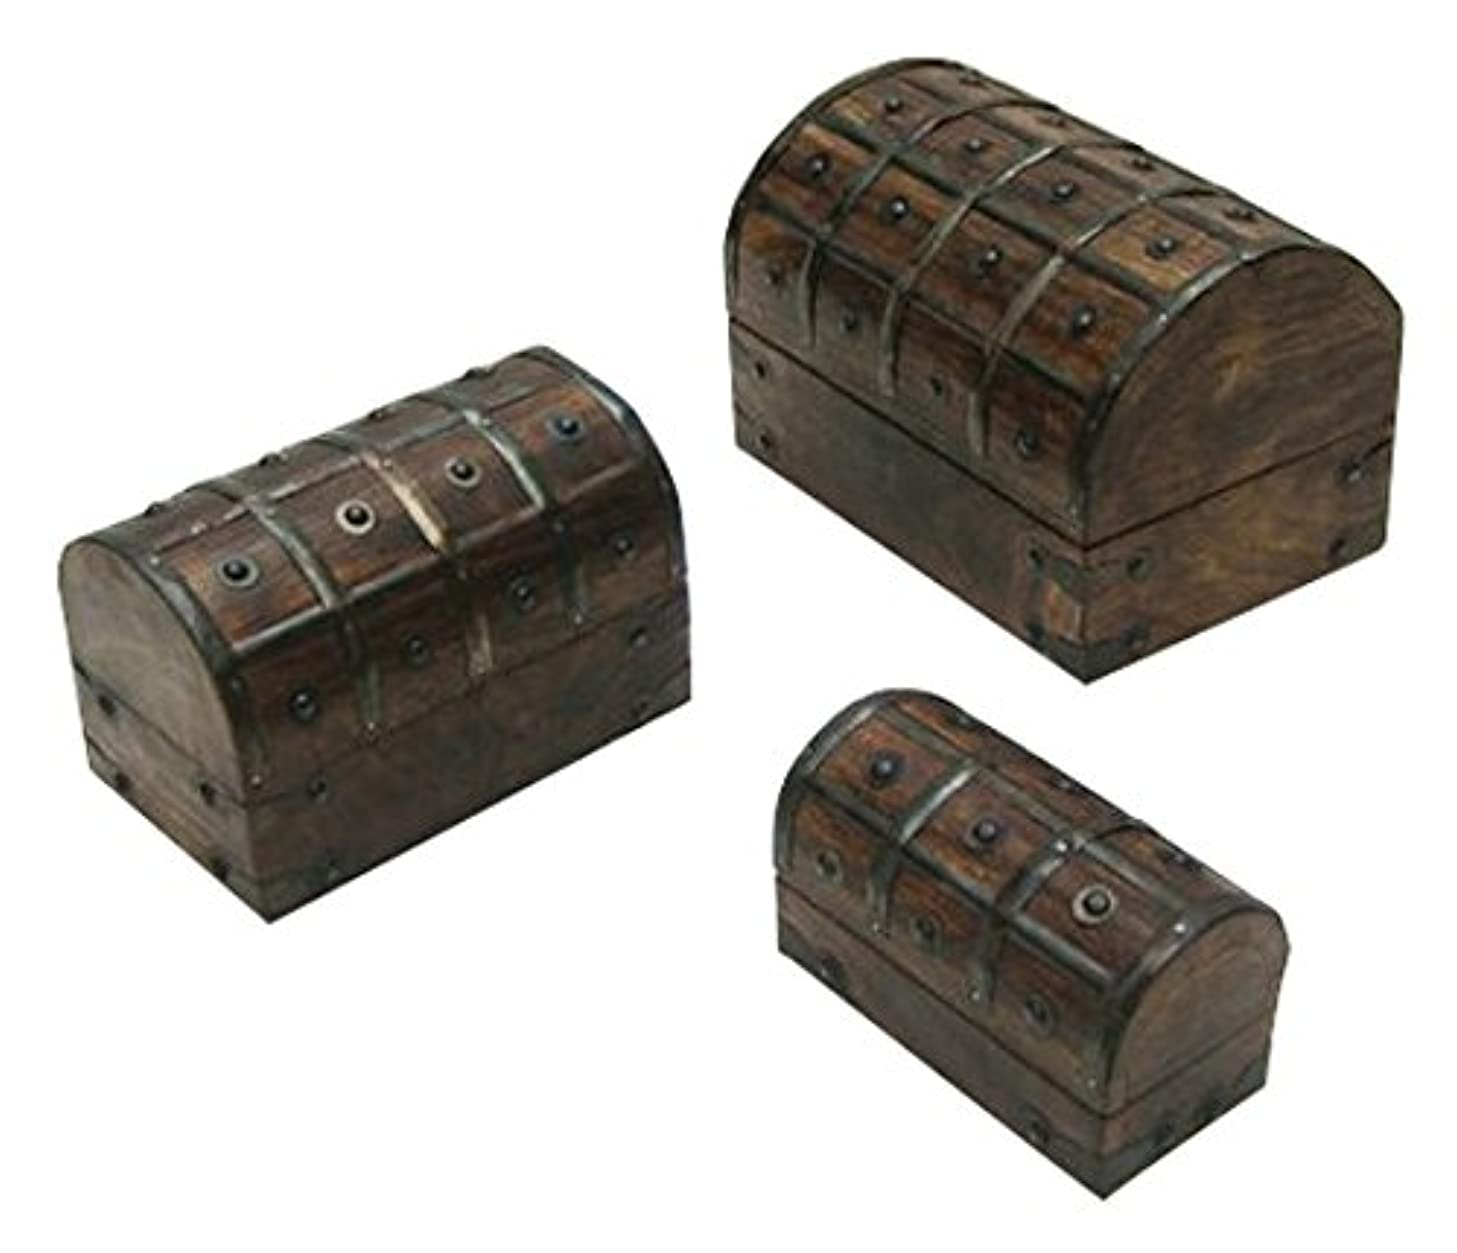 Benzara Debrecen Nested Pirate Chest Set, Fetching and Long-Lasting Home Decor